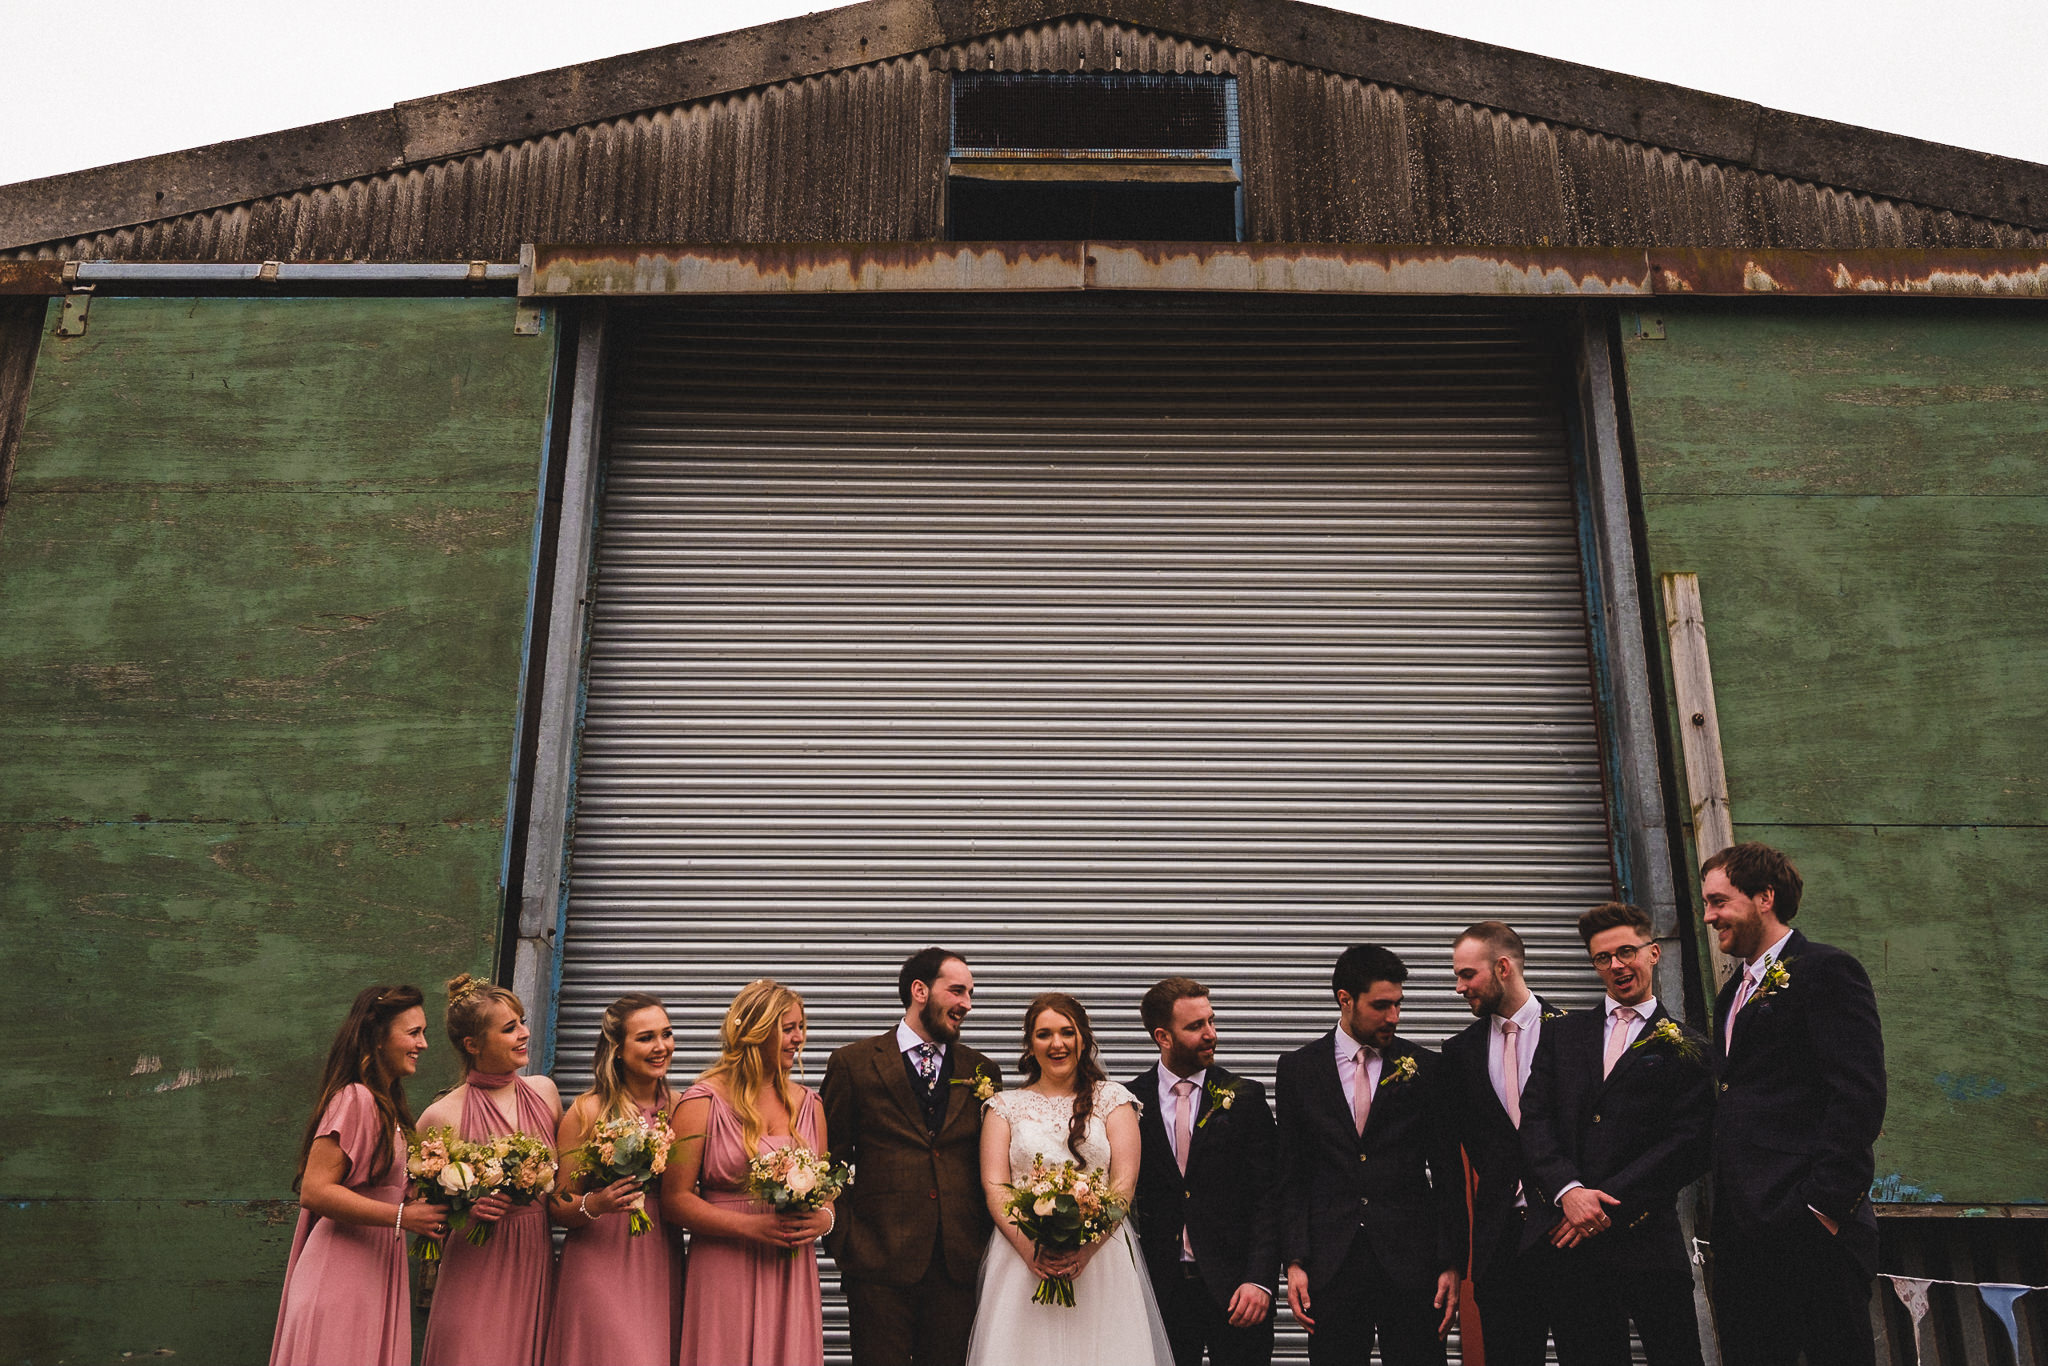 Formal photo of bridal party laughing